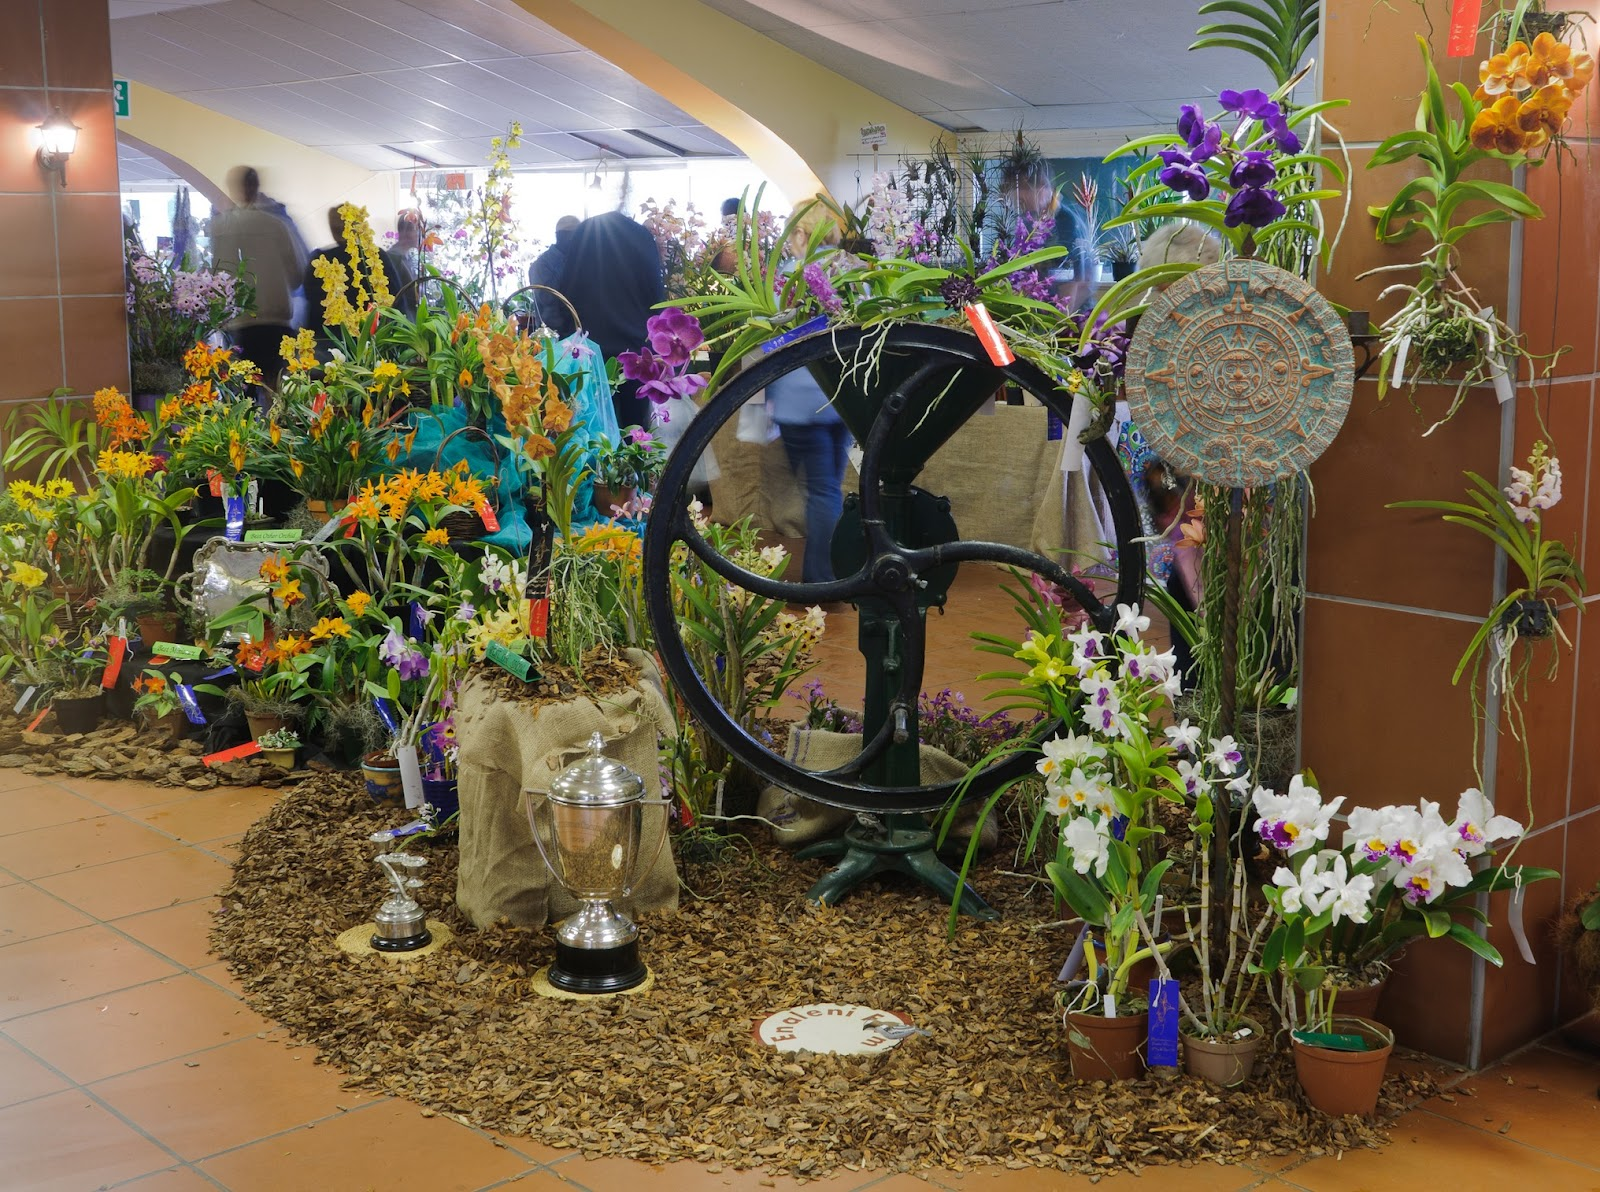 National Orchid Garden, a horticultural showpiece